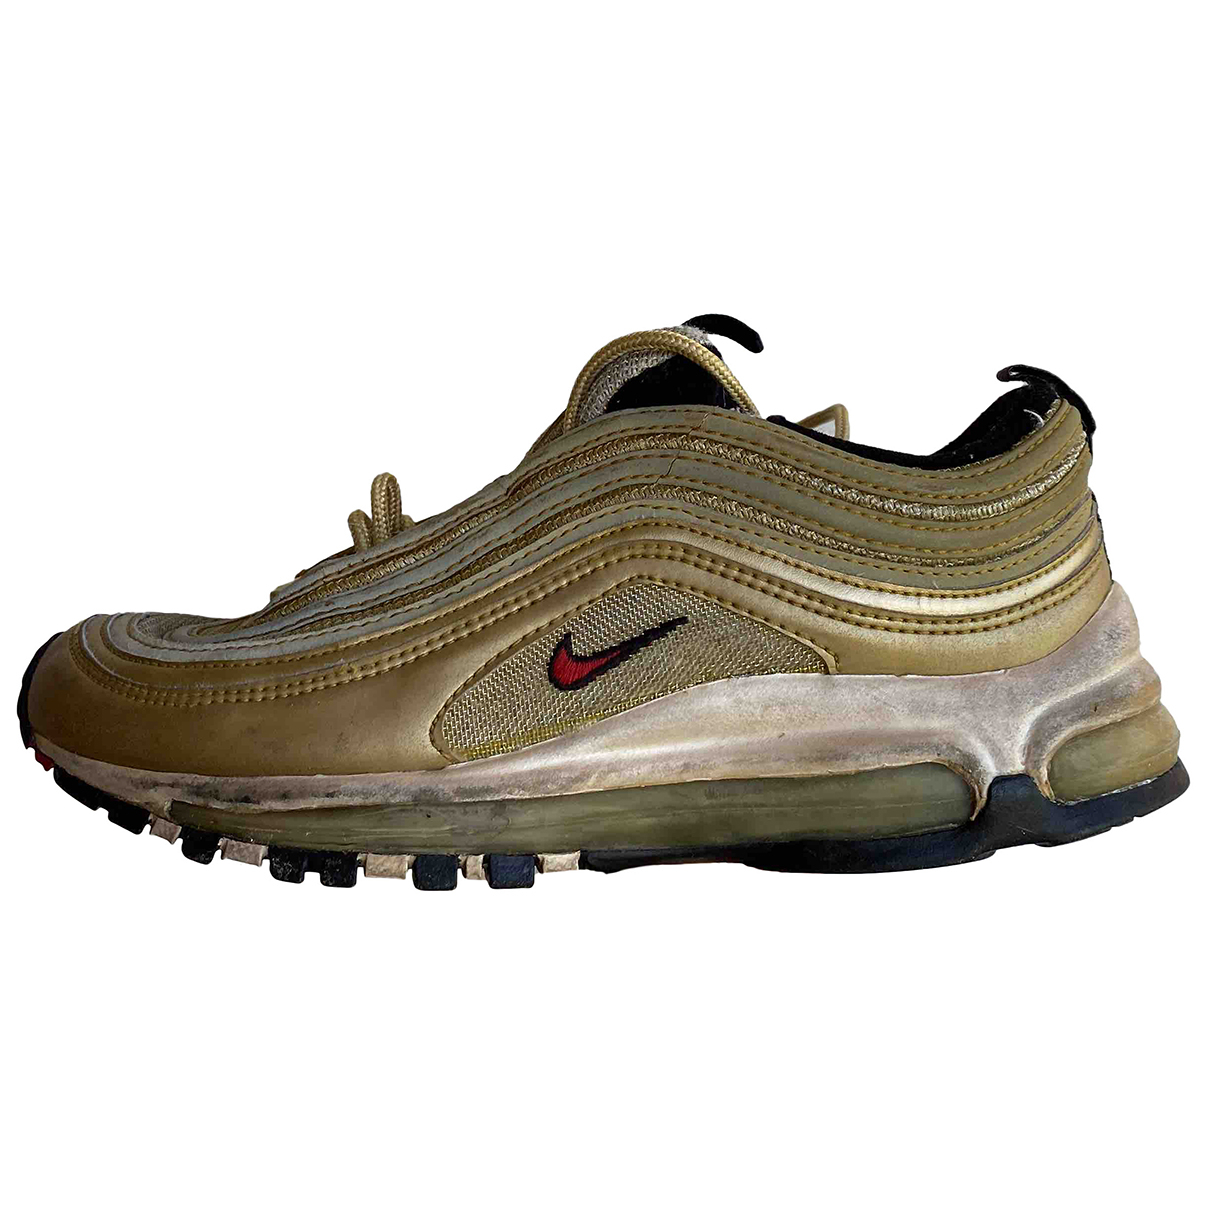 Nike Air Max 97 Gold Cloth Trainers for Women 37.5 EU